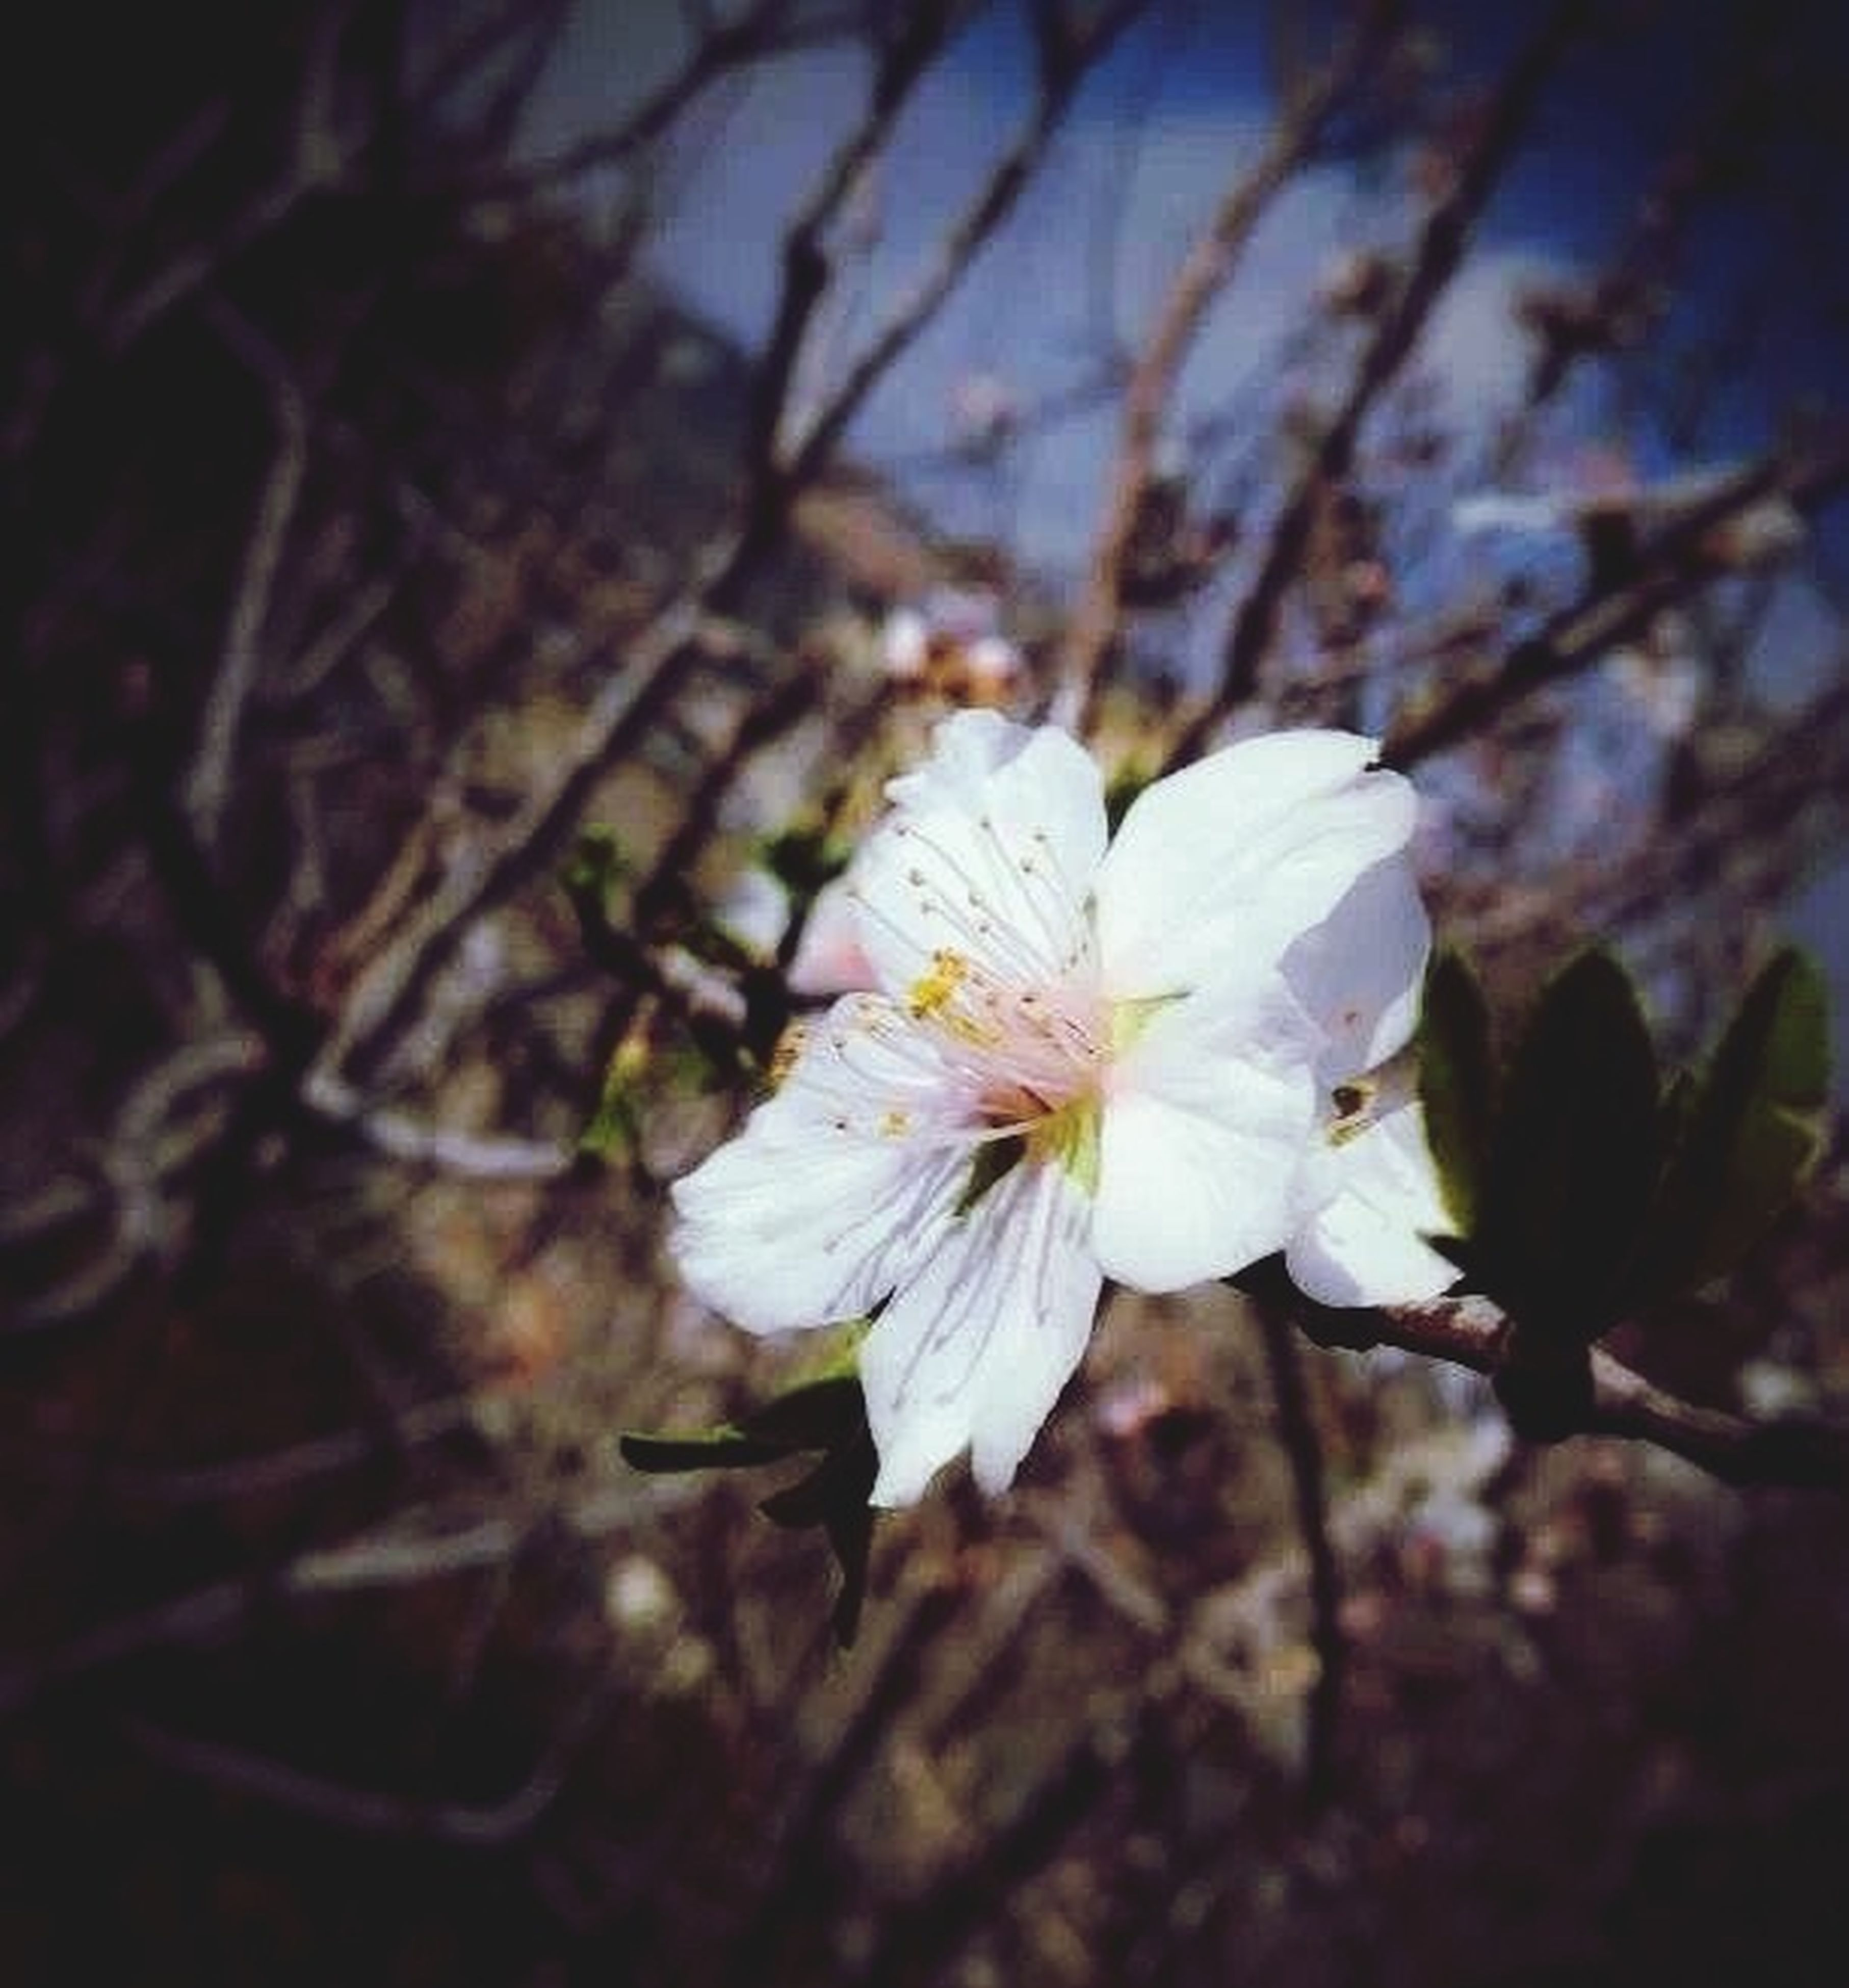 flower, petal, fragility, freshness, flower head, growth, white color, beauty in nature, close-up, blooming, nature, focus on foreground, in bloom, pollen, blossom, stamen, plant, single flower, outdoors, no people